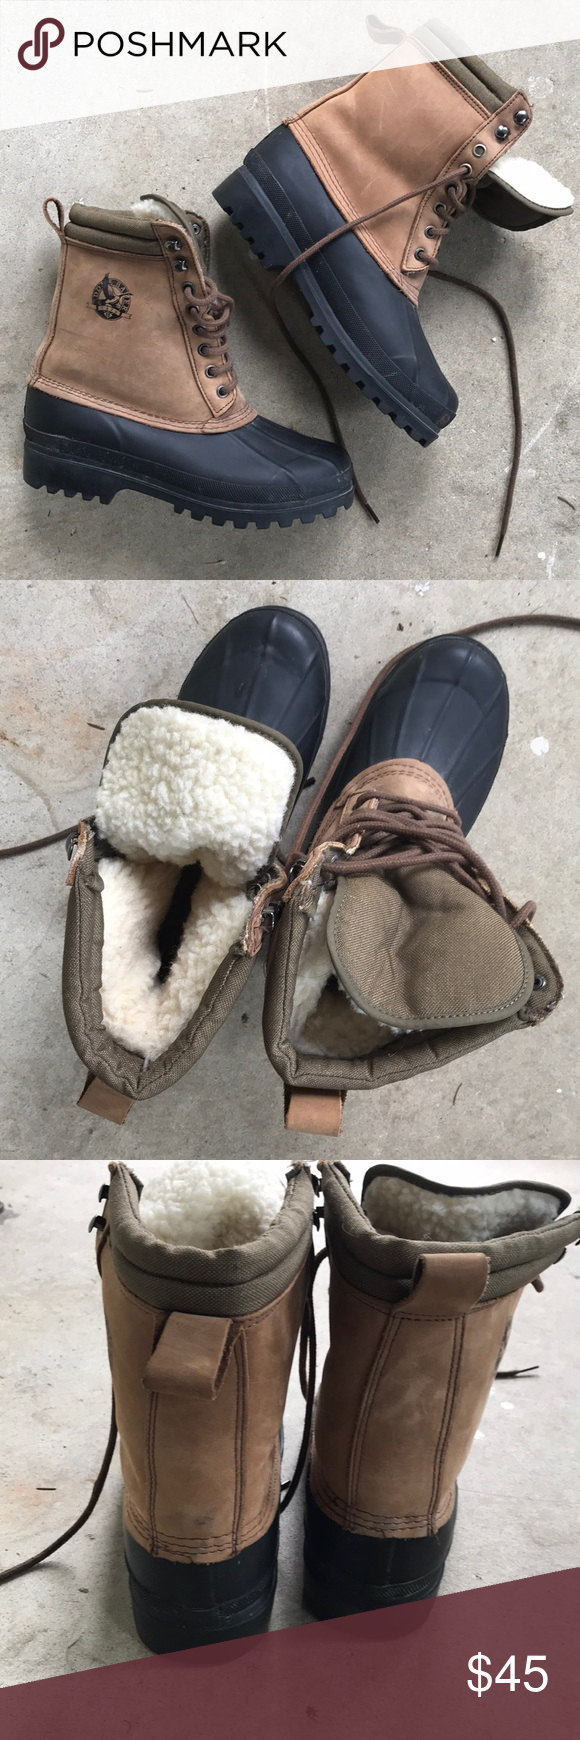 Eddie Bauer snow/rain boots (With images) Boots, Snow